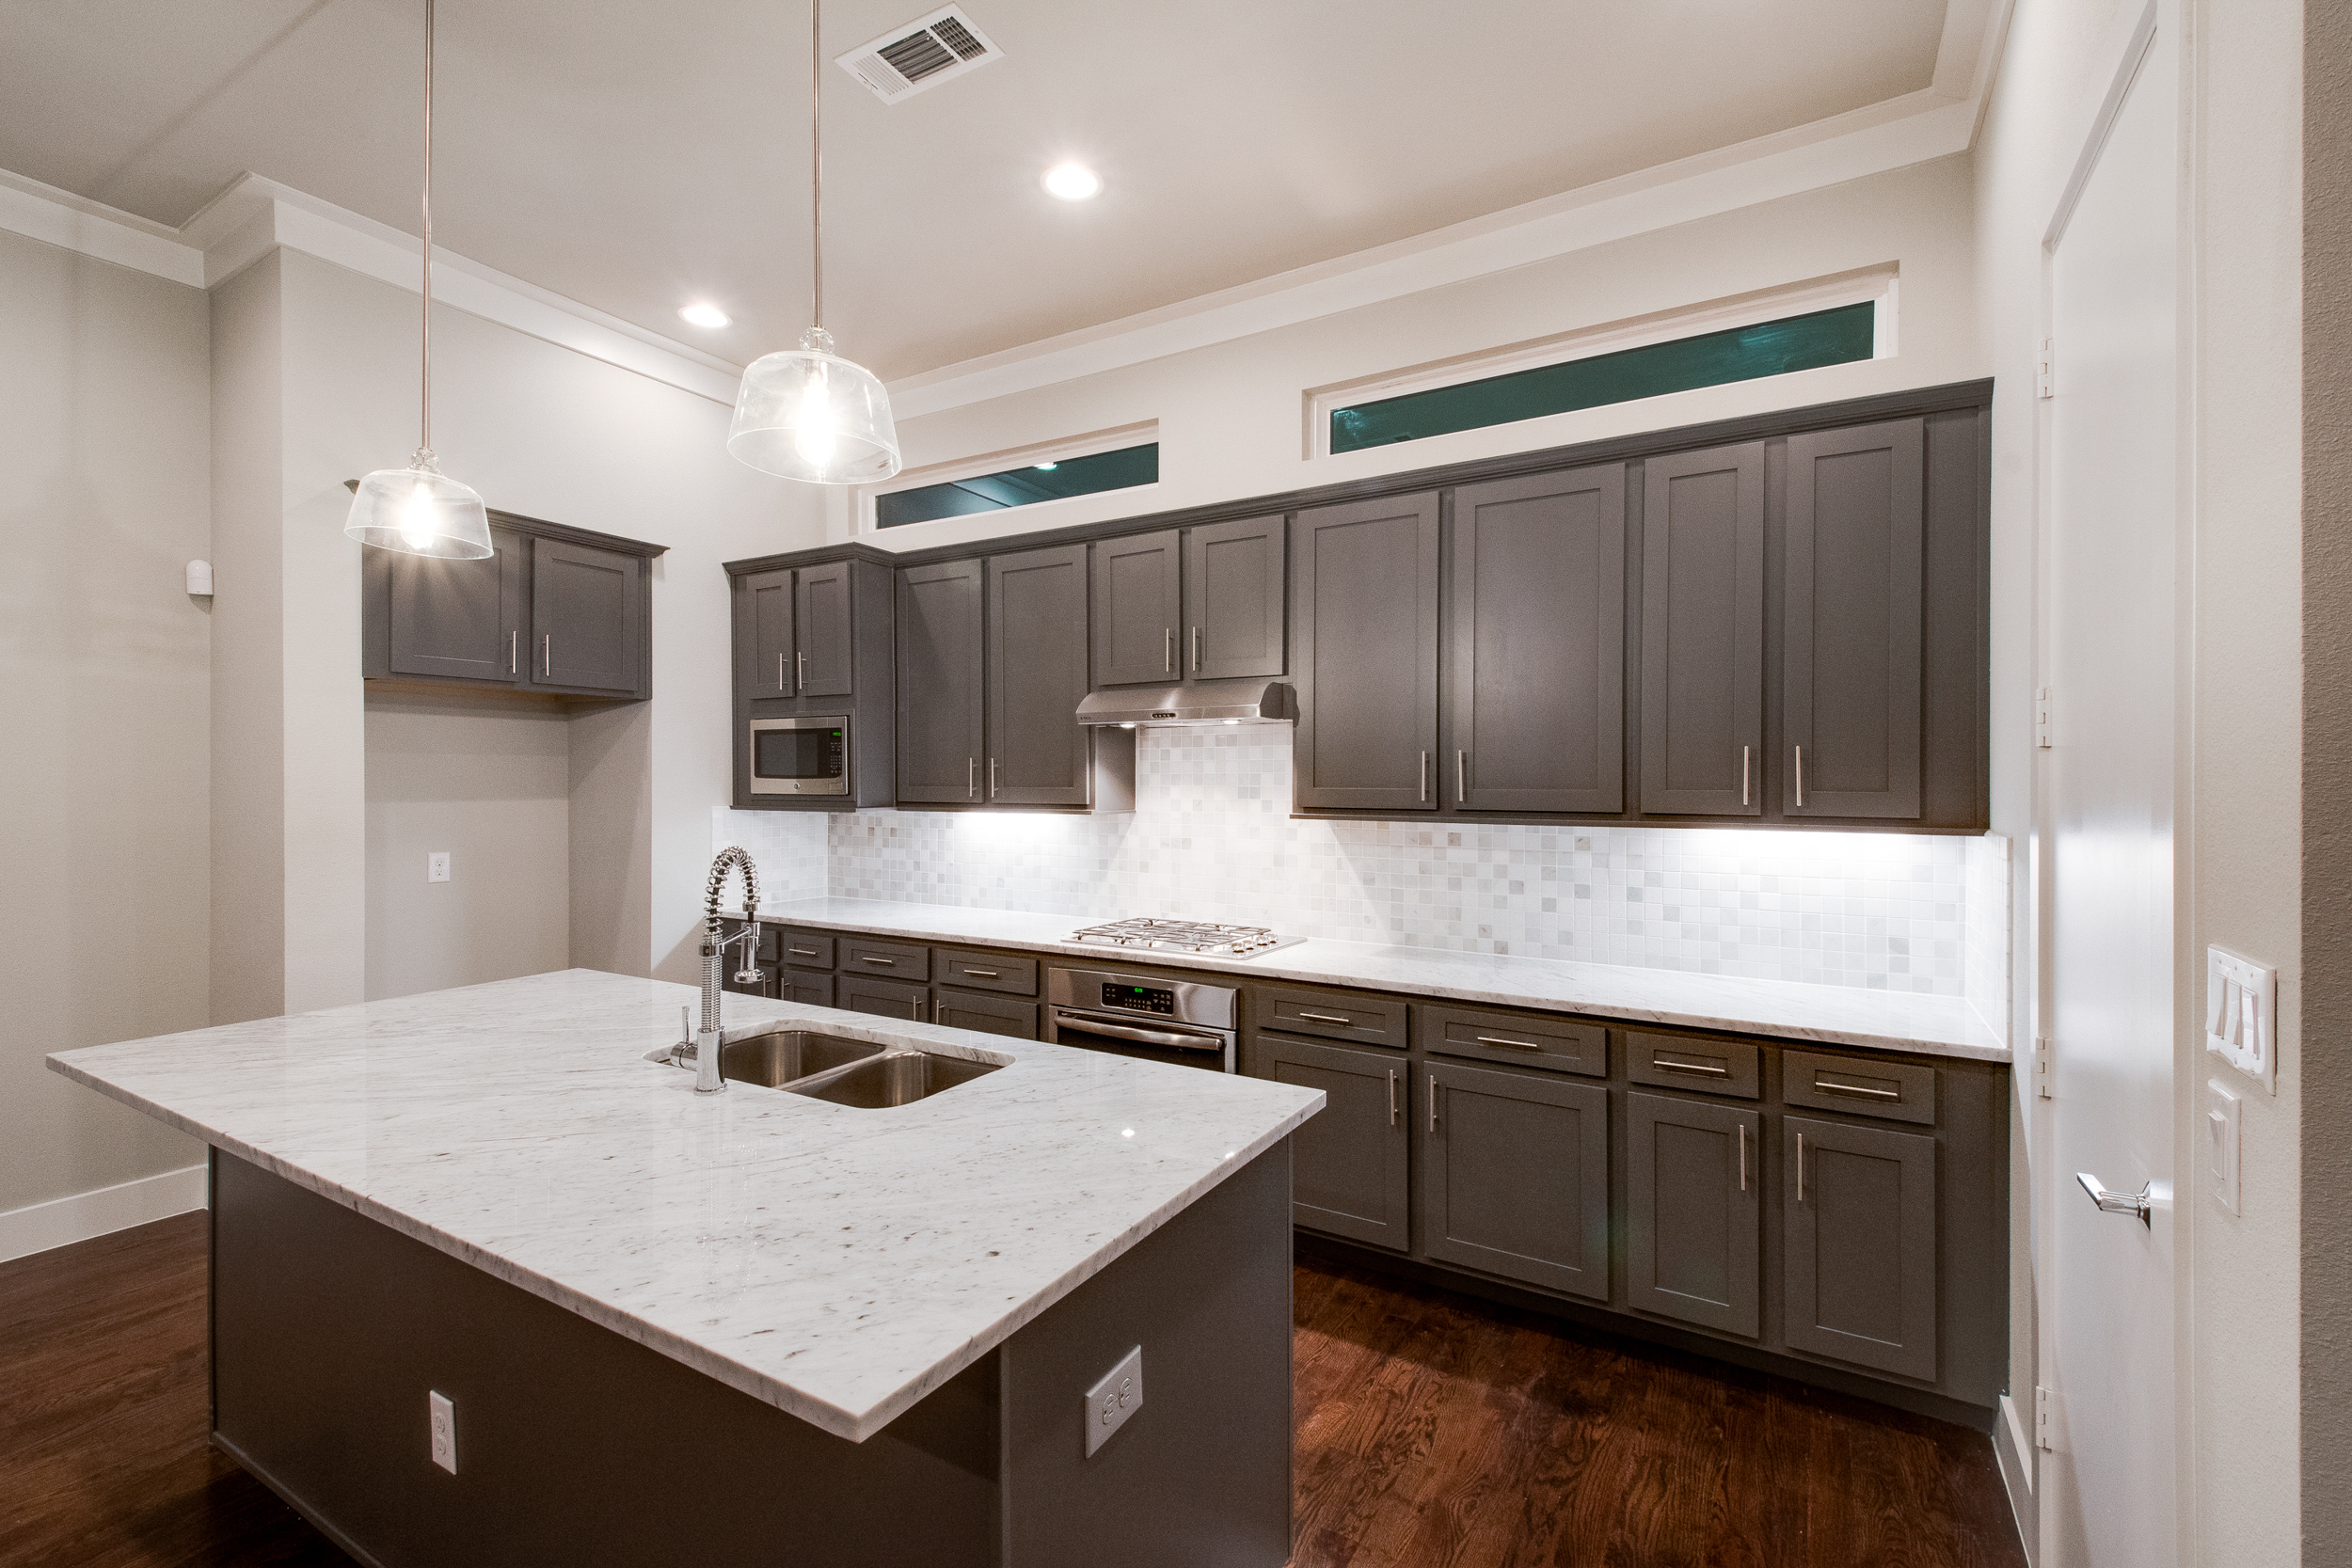 Interior view of the kitchen with dark cabinets, stainless steel appliances, and a large center island with light countertops